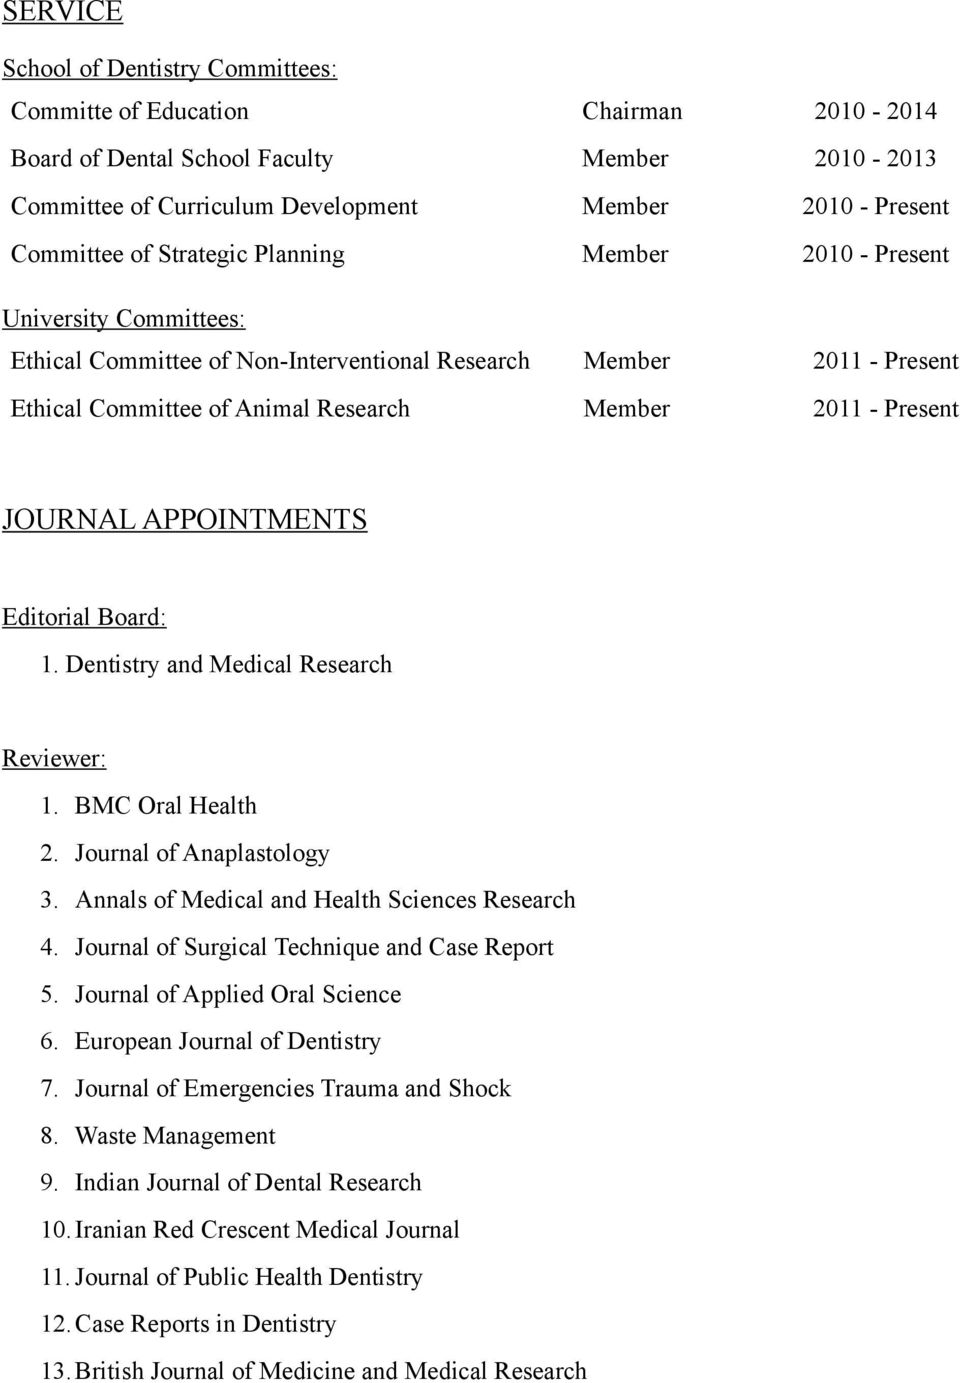 JOURNAL APPOINTMENTS Editorial Board: 1. Dentistry and Medical Research Reviewer: 1. BMC Oral Health 2. Journal of Anaplastology 3. Annals of Medical and Health Sciences Research 4.